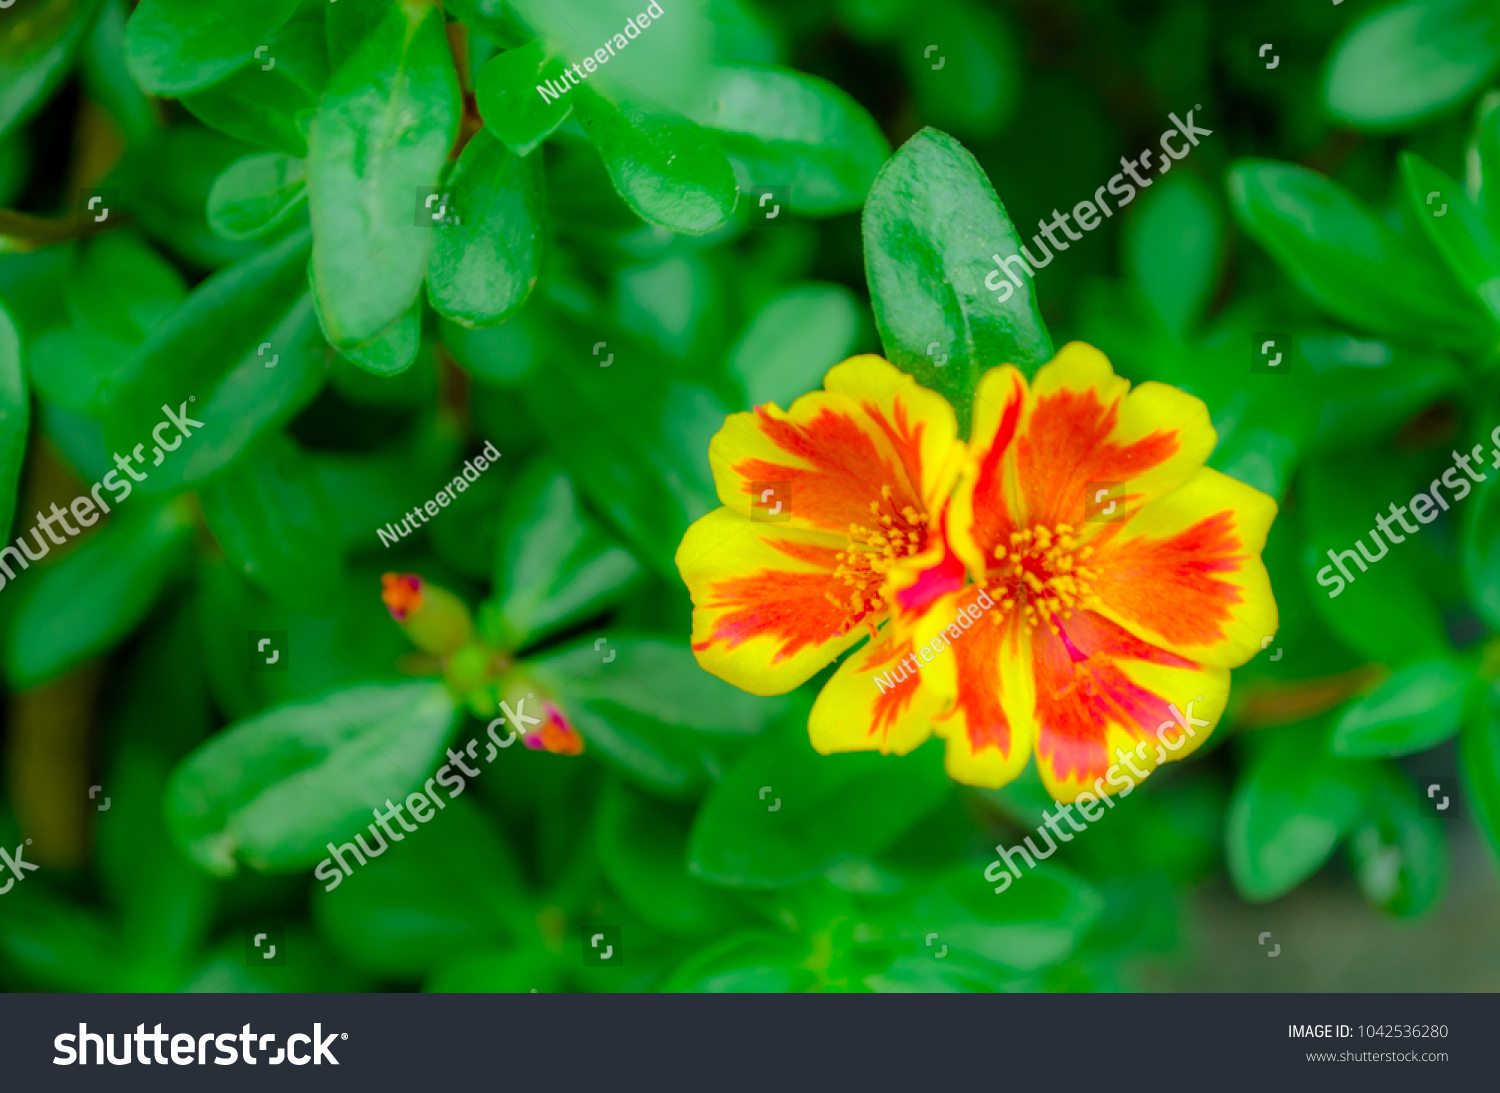 Orange Yellow Flower Name Common Onpurslane Verdolaga Pigweed